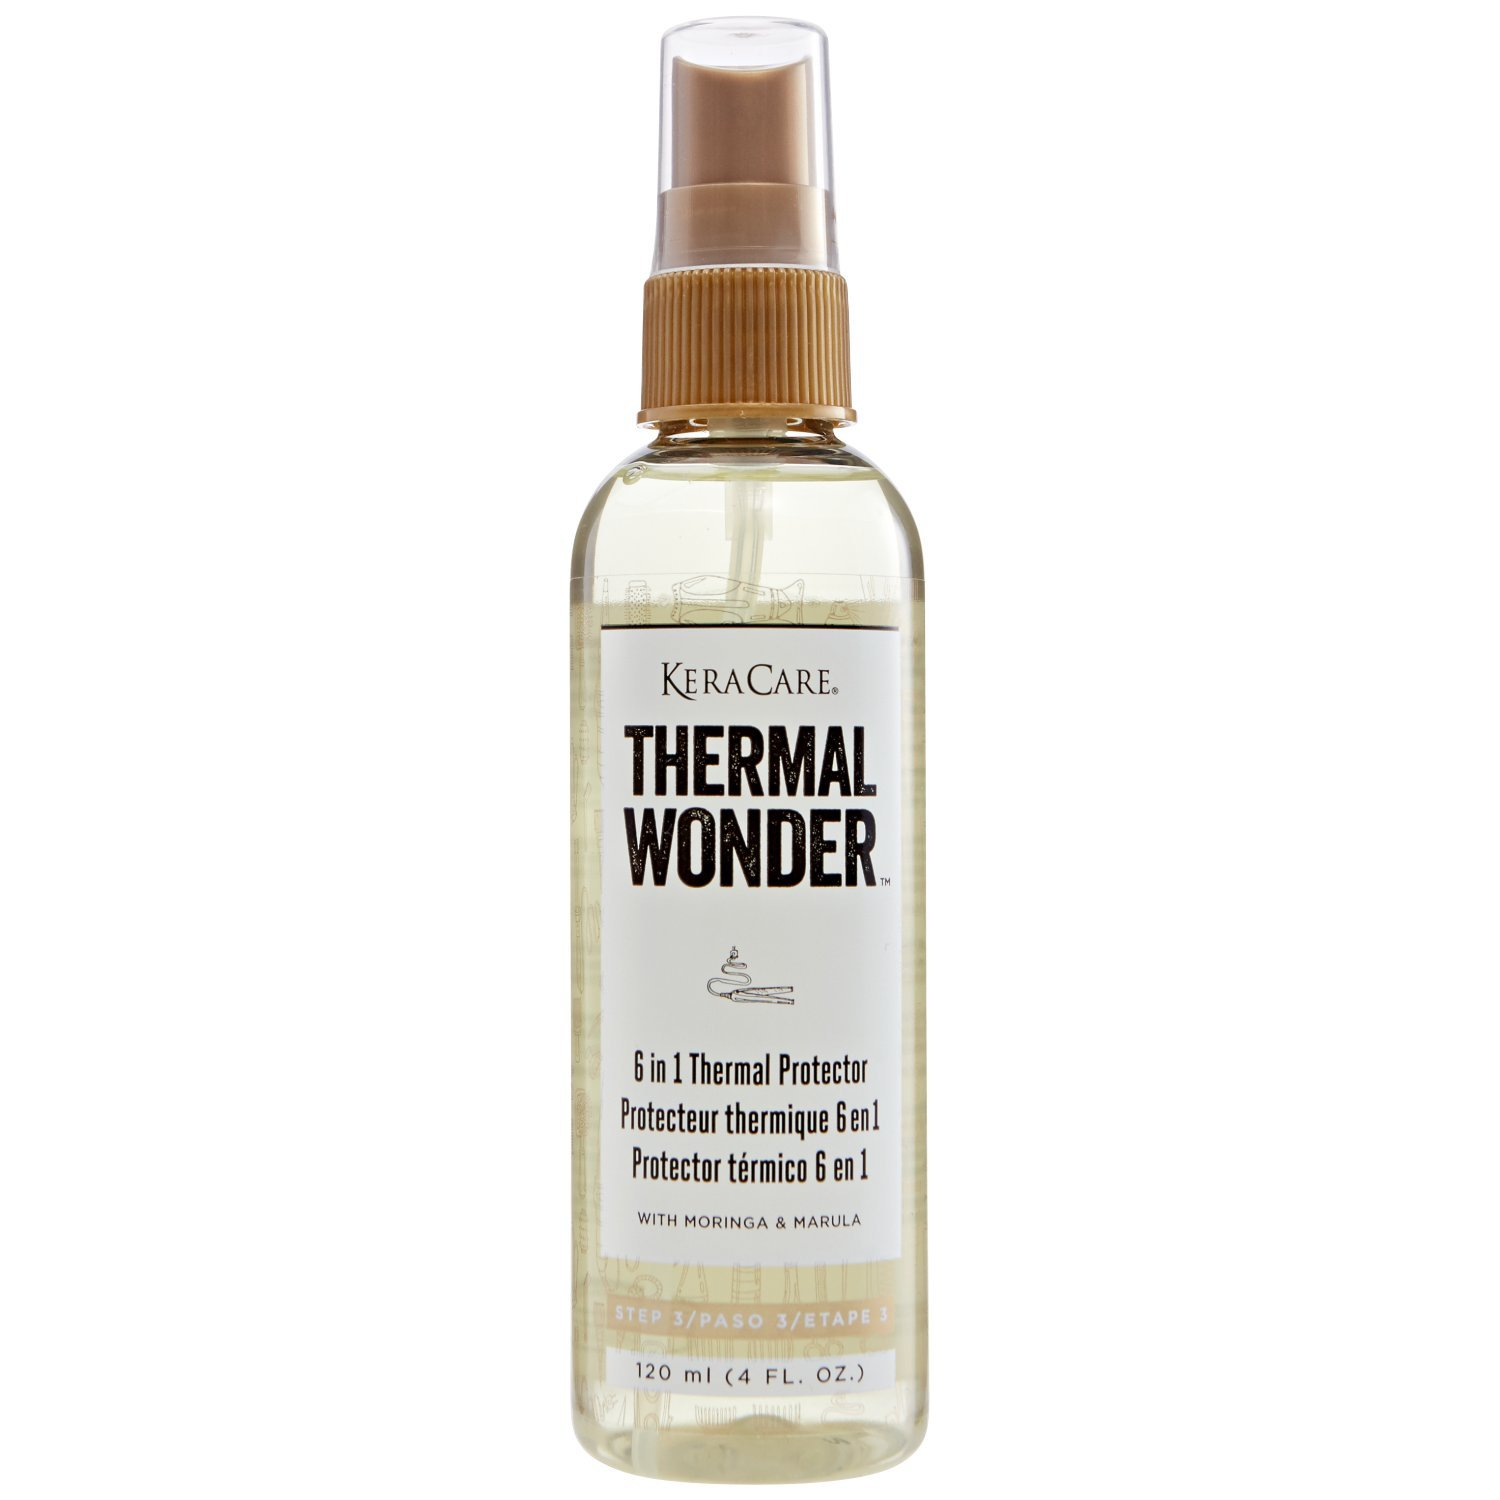 KeraCare Wonder 6 in 1 Thermal Protector, 120 ml Avlon Europe Limited 796708320242